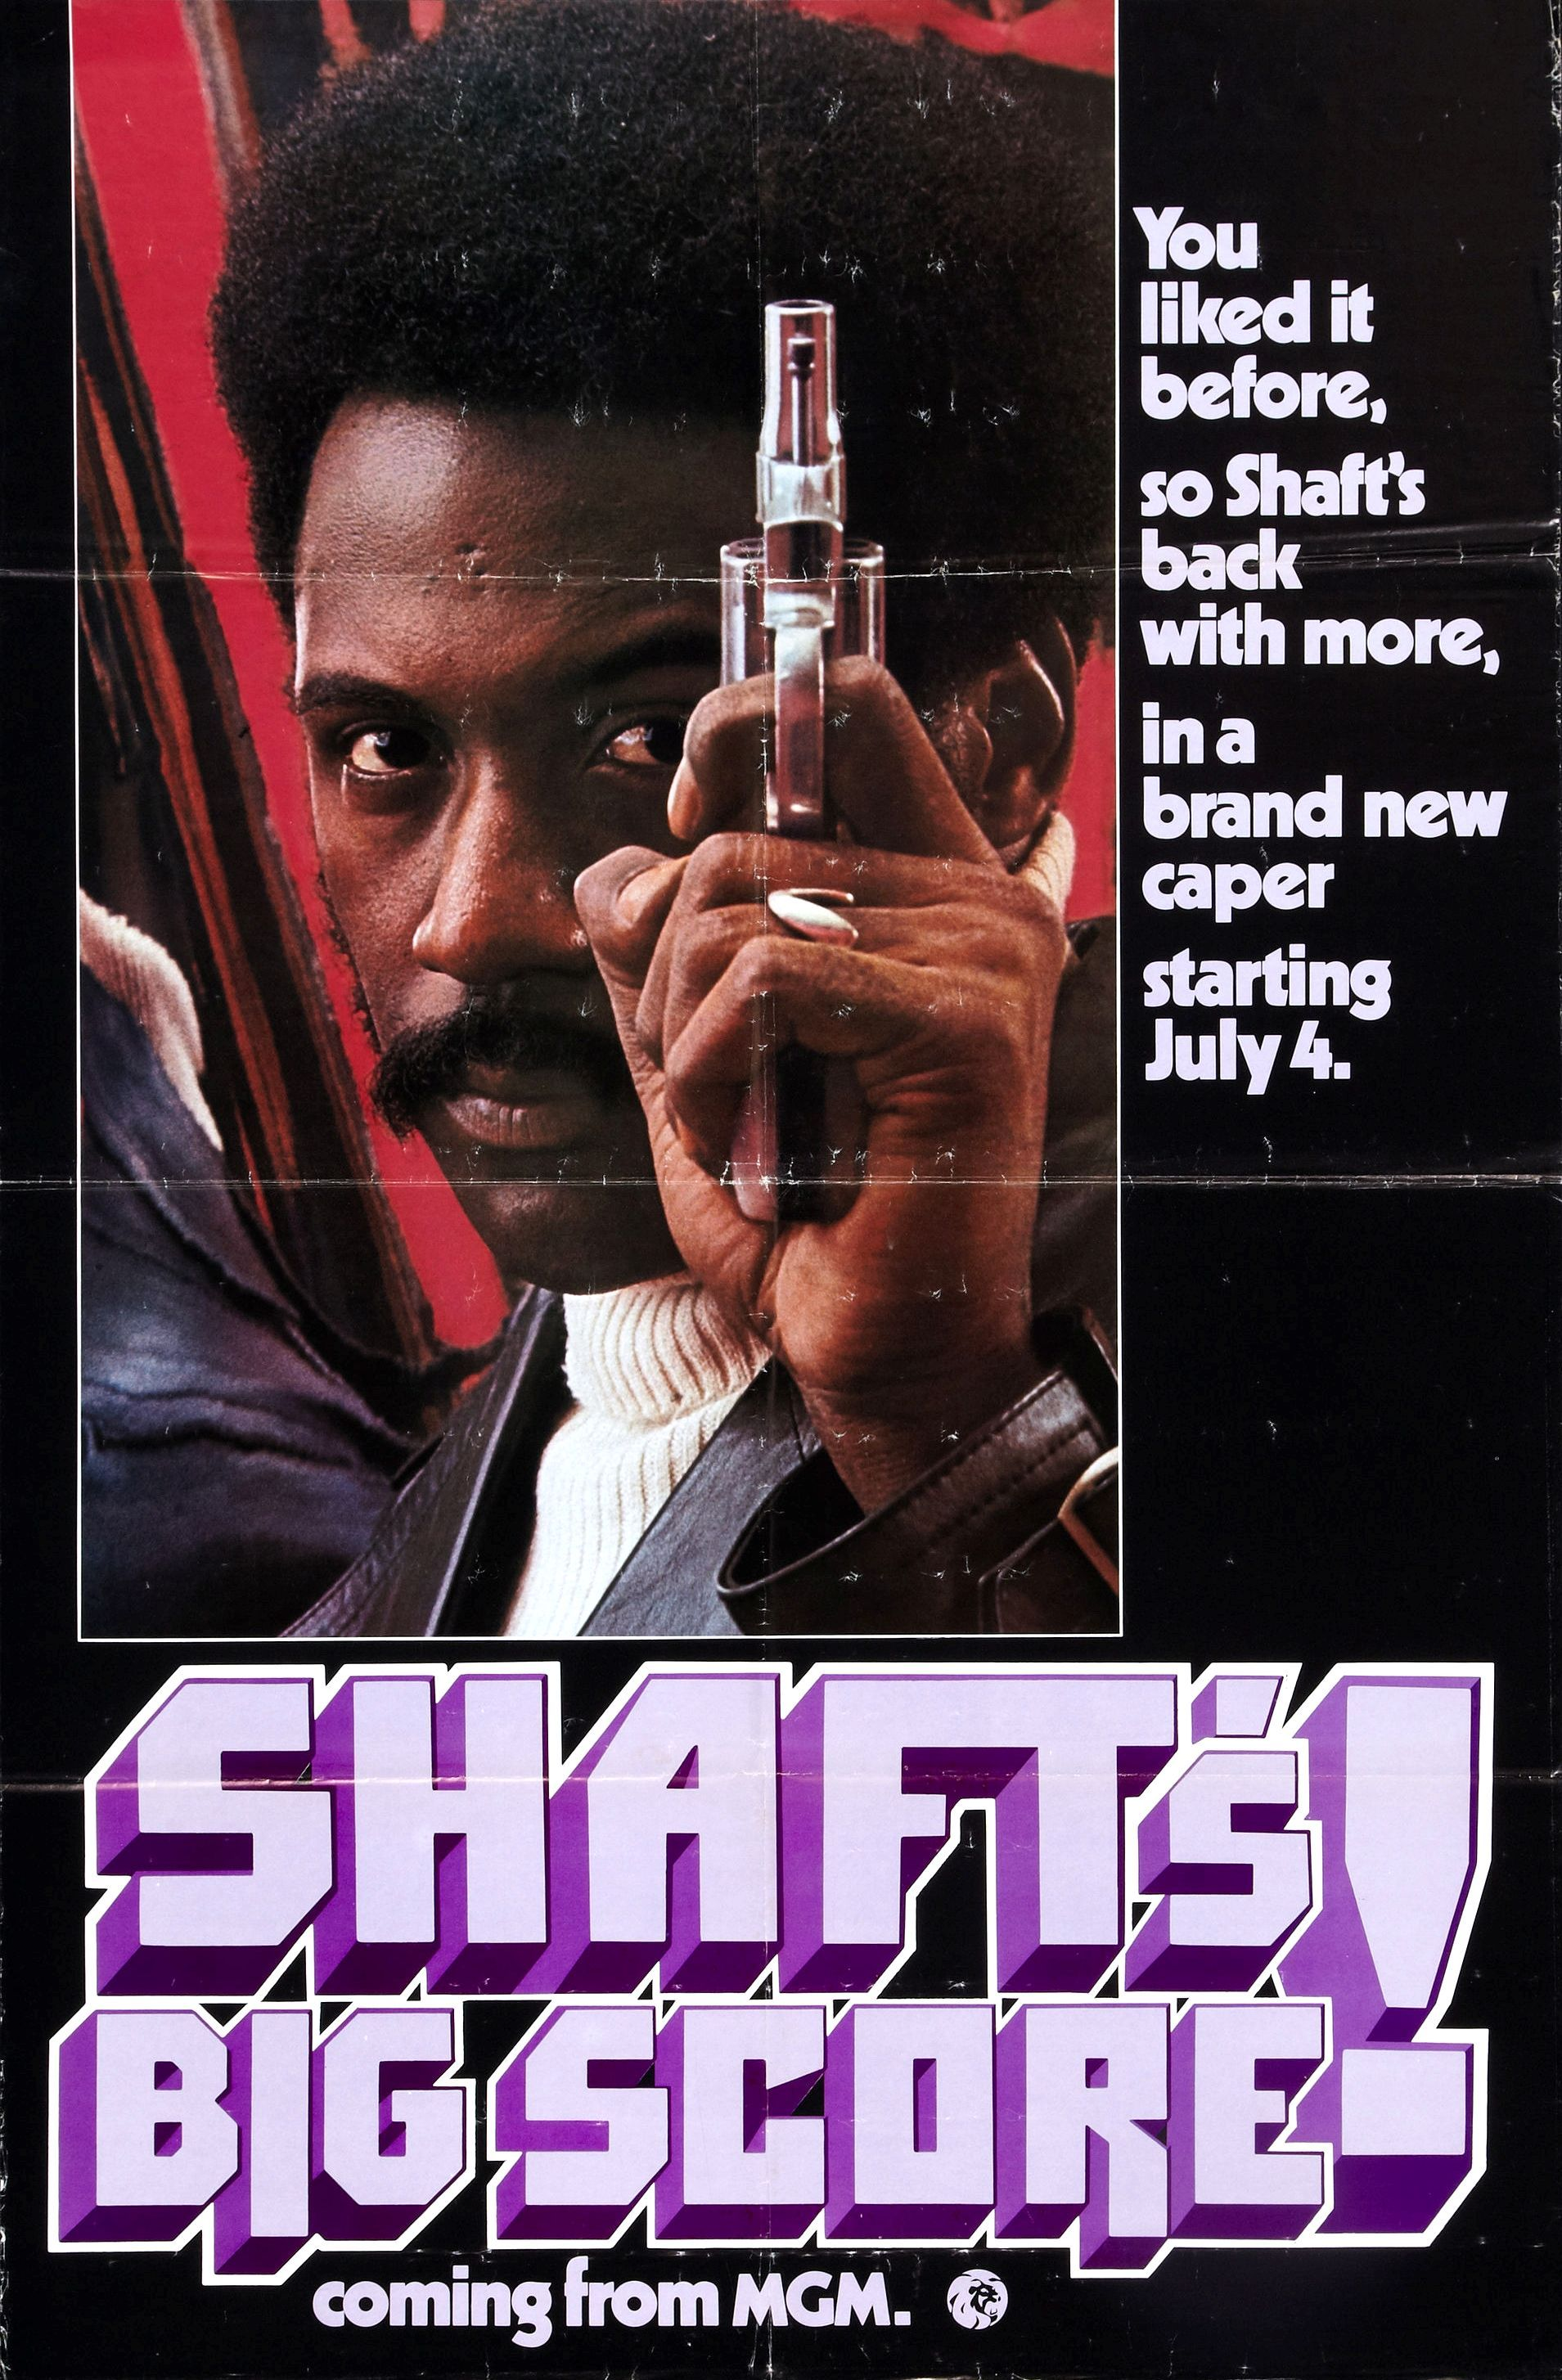 Shaft S Big Score 1972 Action Film Directed By Gordon Parks It Is